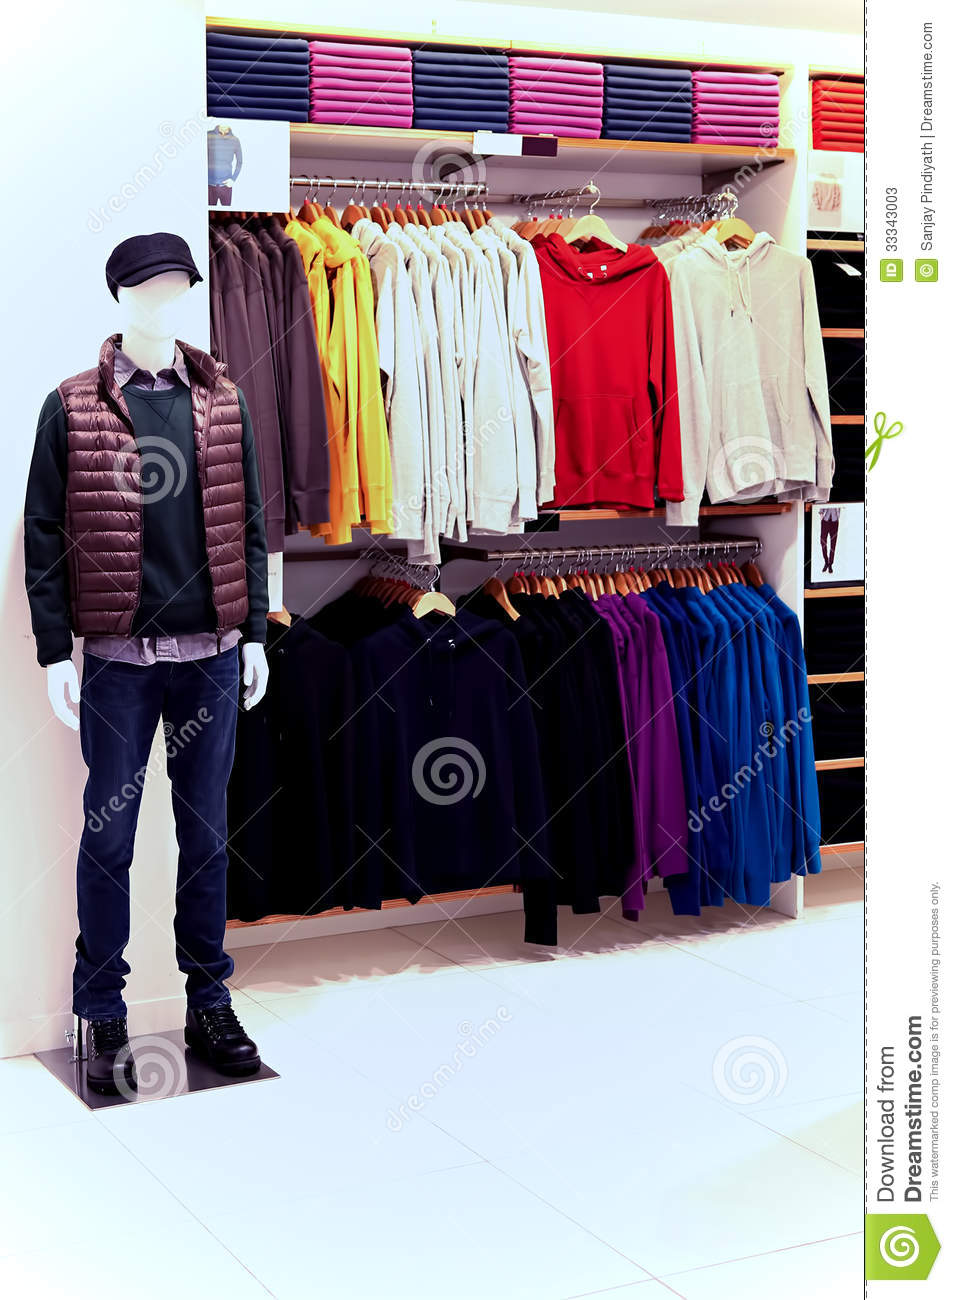 mens clothing store stock photos image 33343003